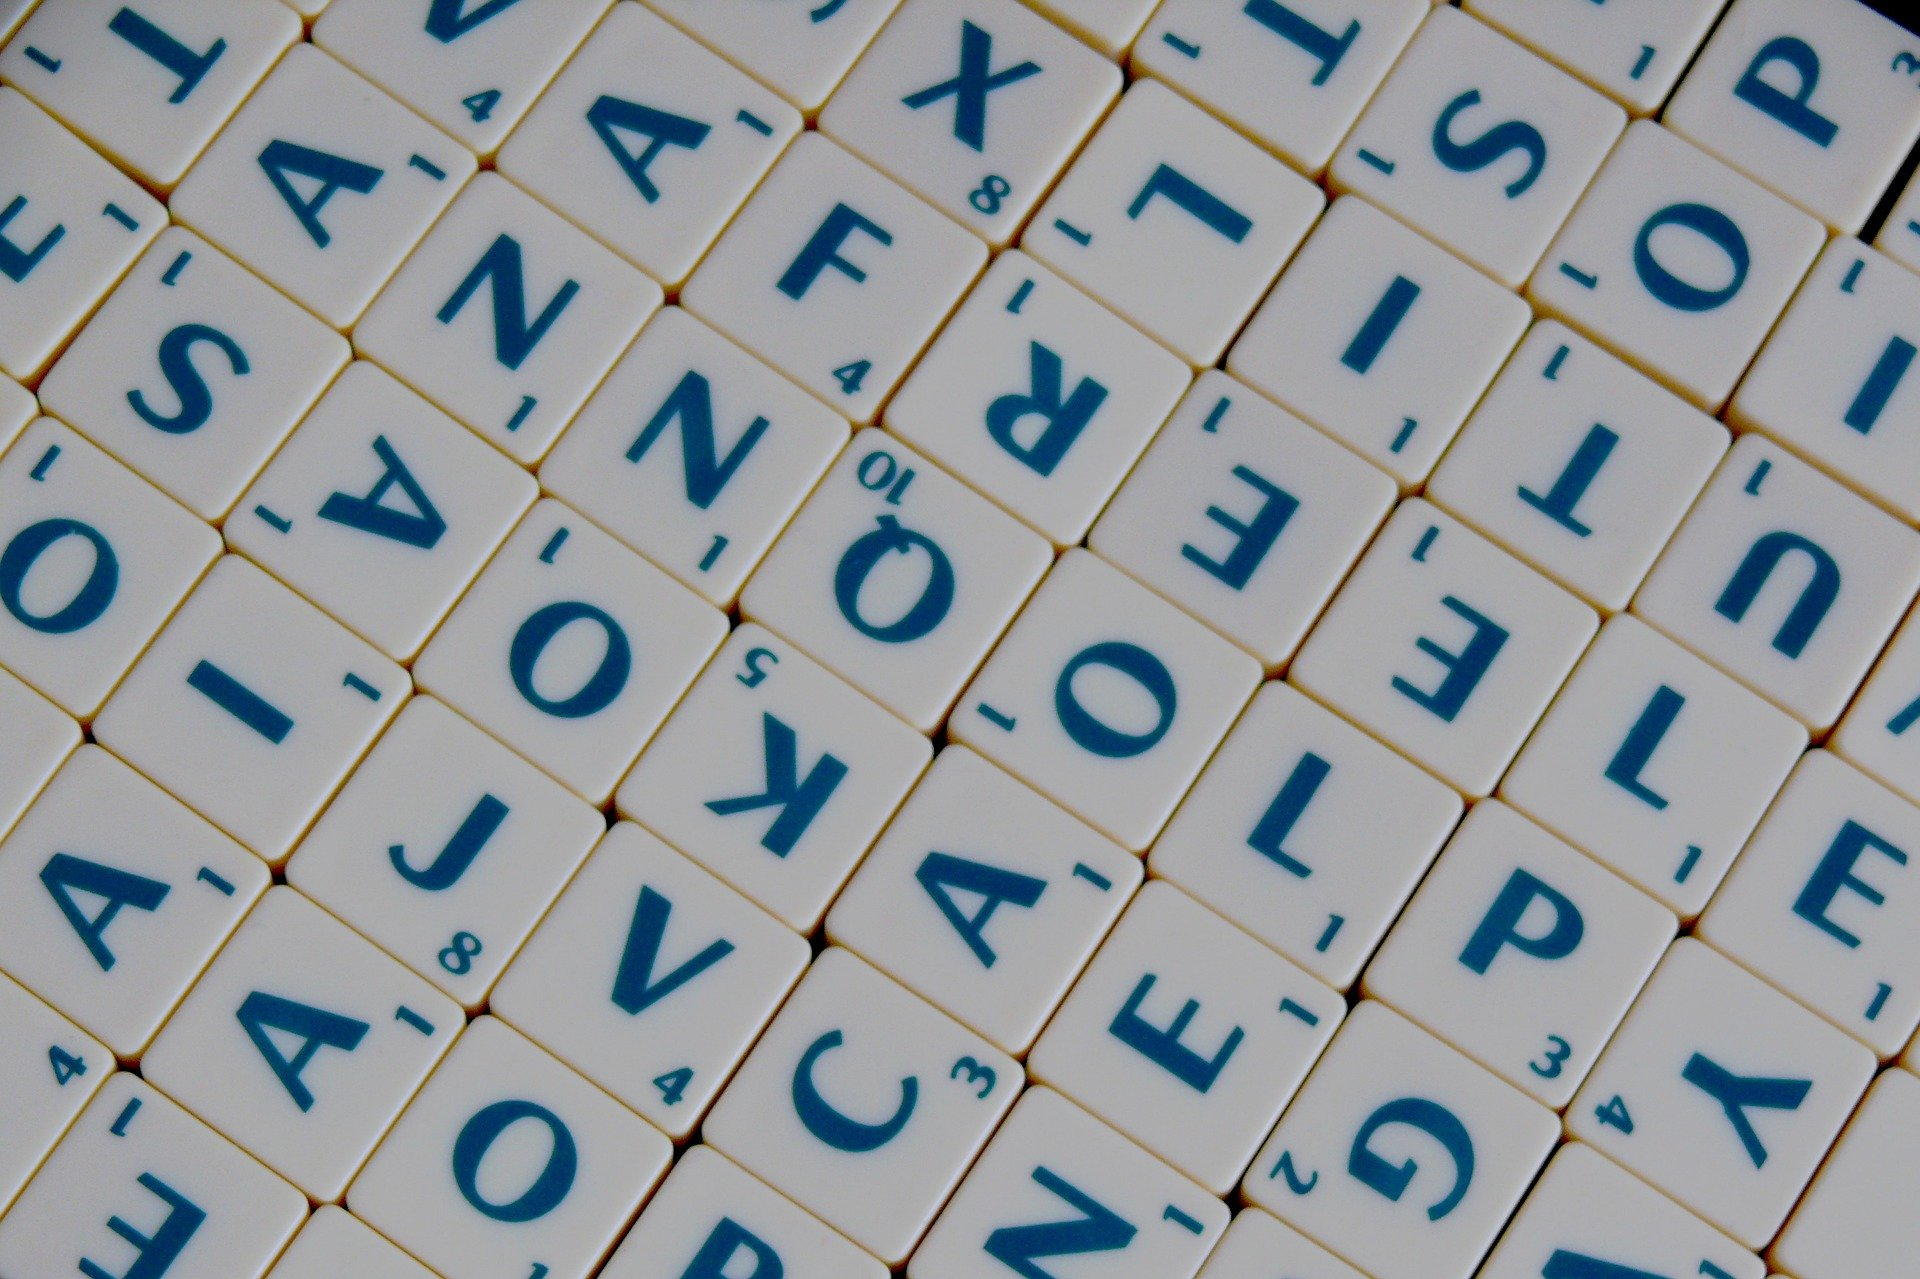 Scrabble letters pictured. | Source: Pixabay.